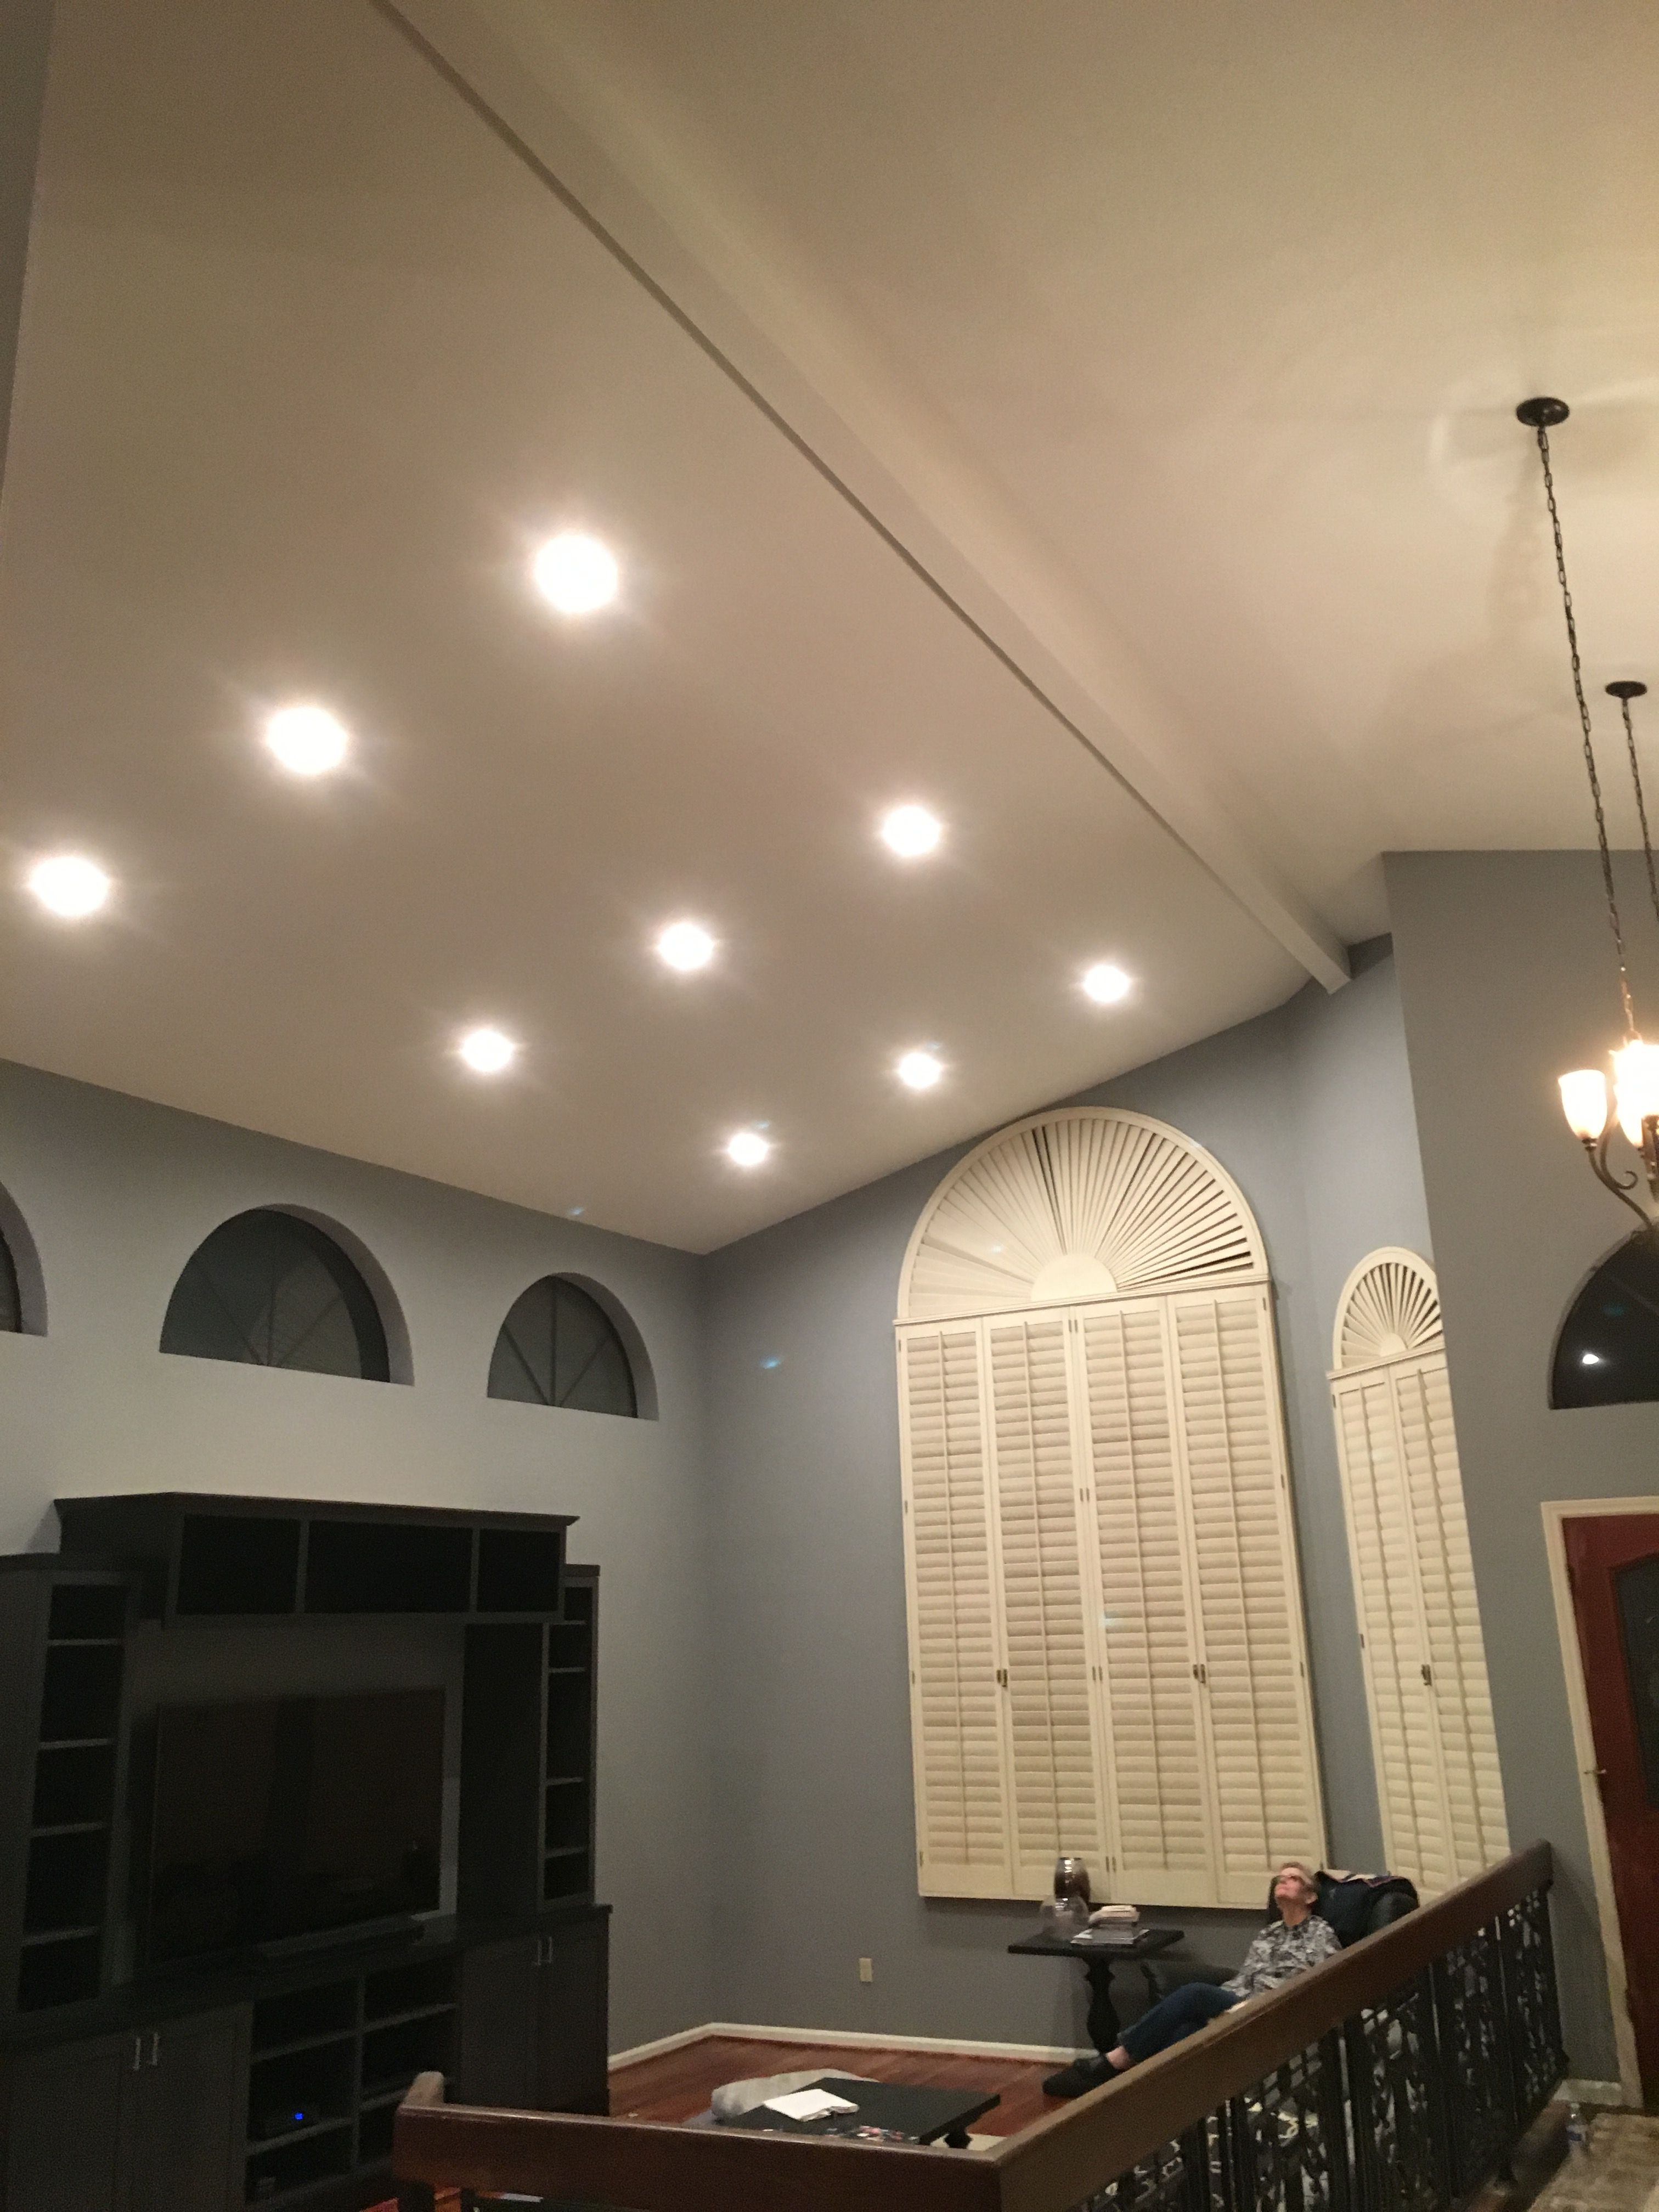 home us appealing recessed ceilings oksunglassesn ceiling vs under utilitech vaulted pitched bulbs astonishing xenon light lighting sloped awesome puck direct design led cabinet kichler